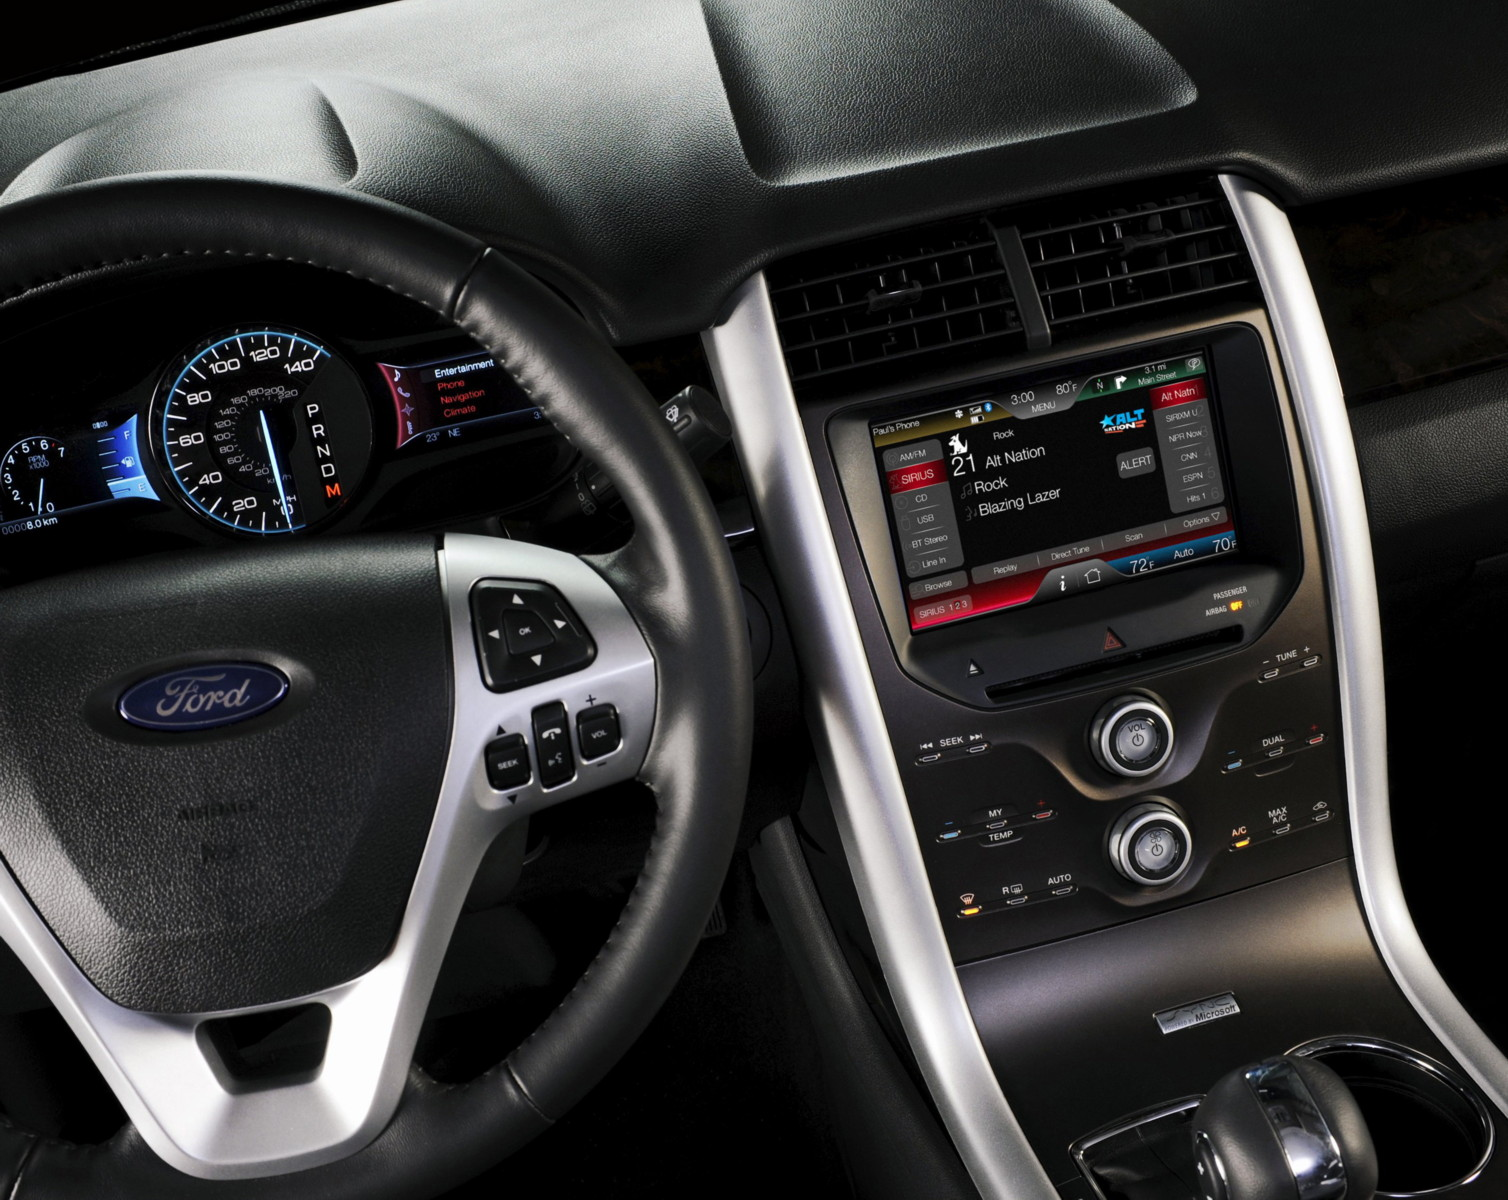 Ford Unveils Iphone Inspired Myford And Mylincoln Interface Systems